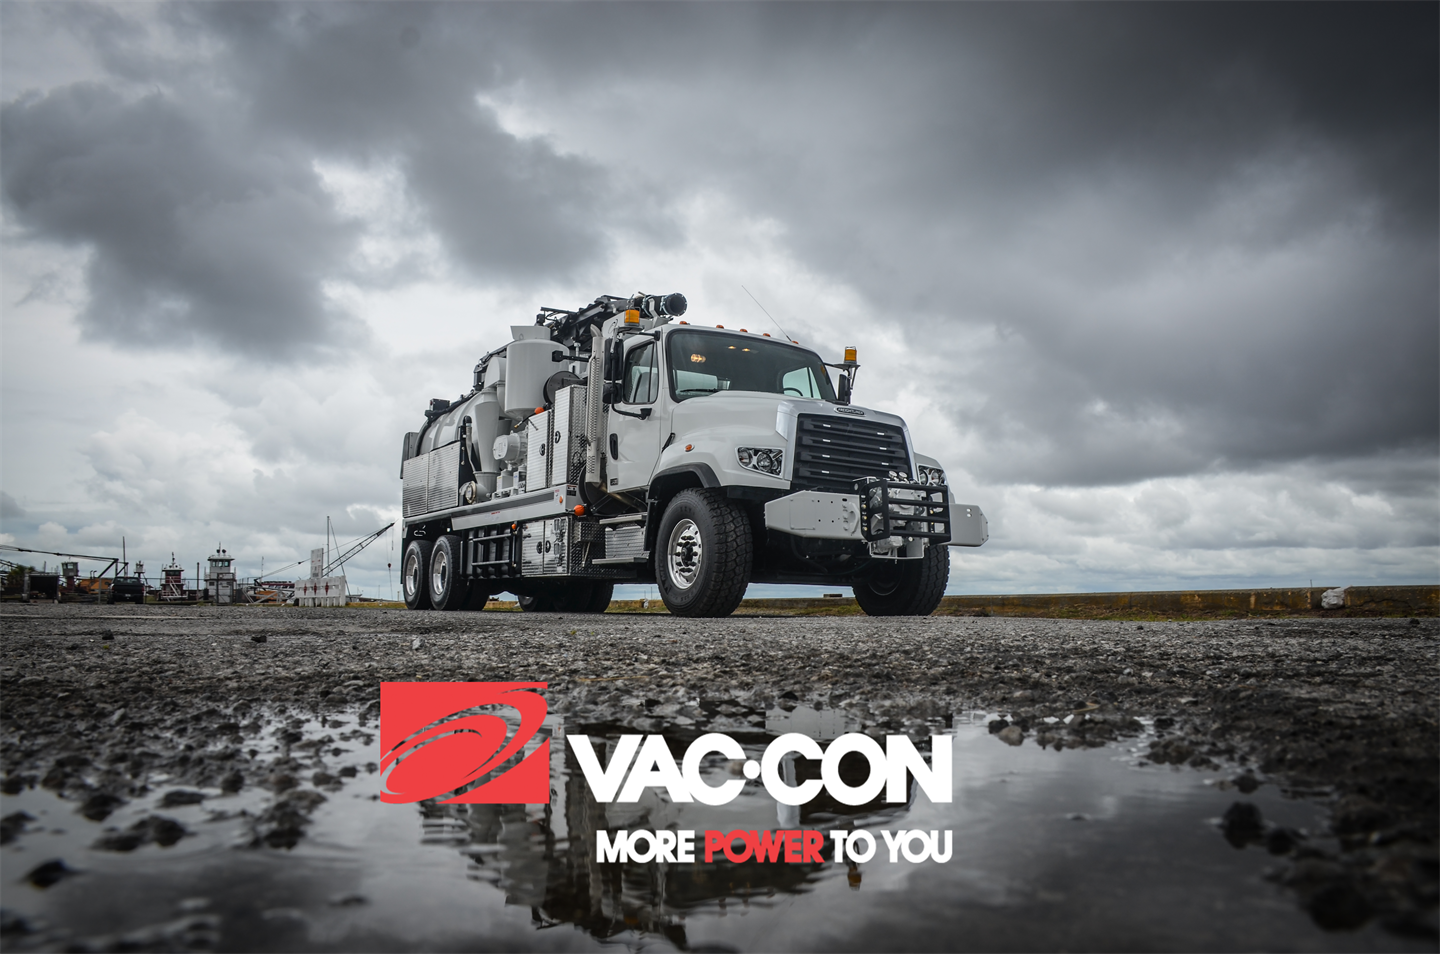 Products and Equipment from Vac-Con, Inc  | Environmental XPRT